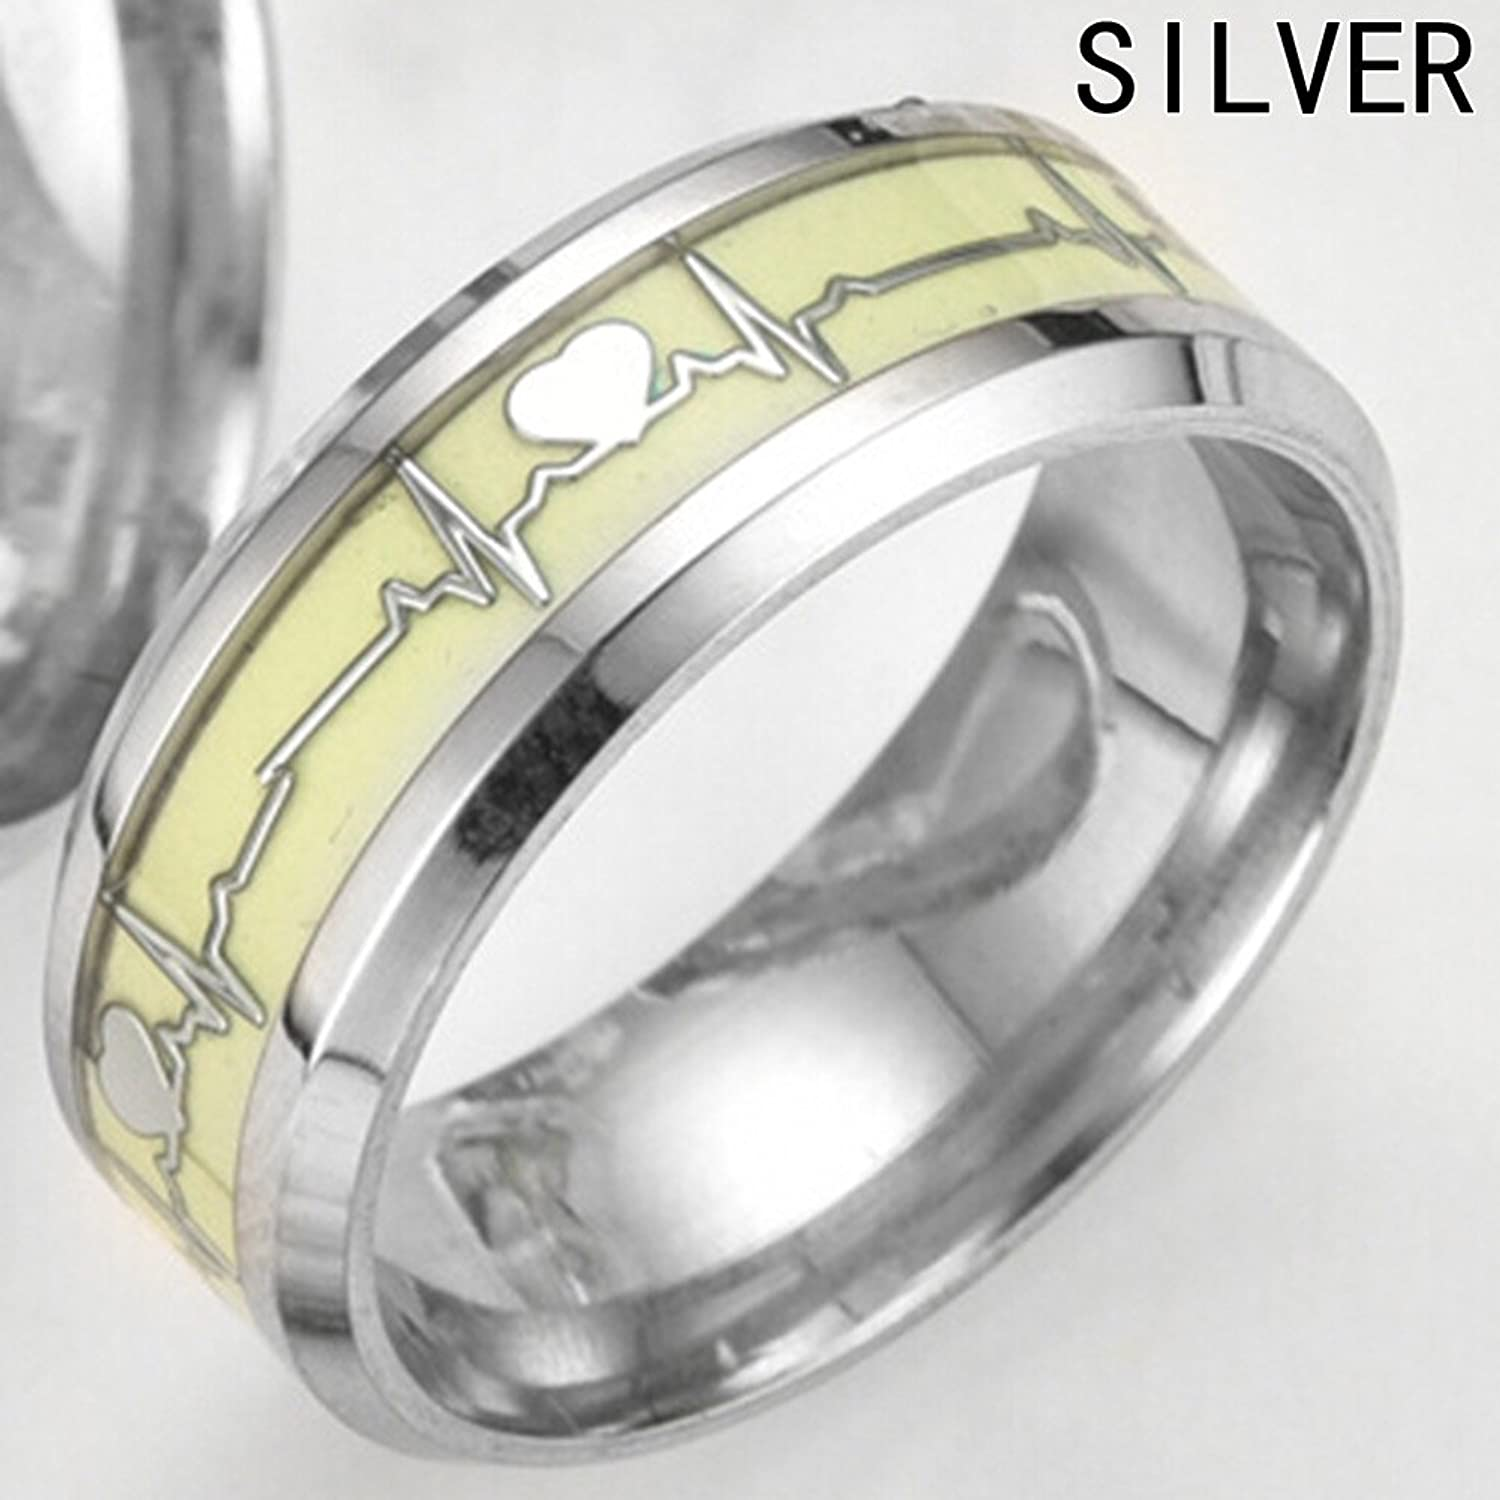 Feixingjewelry Glow in the Dark Silver Heartbeat Titanium Stainless